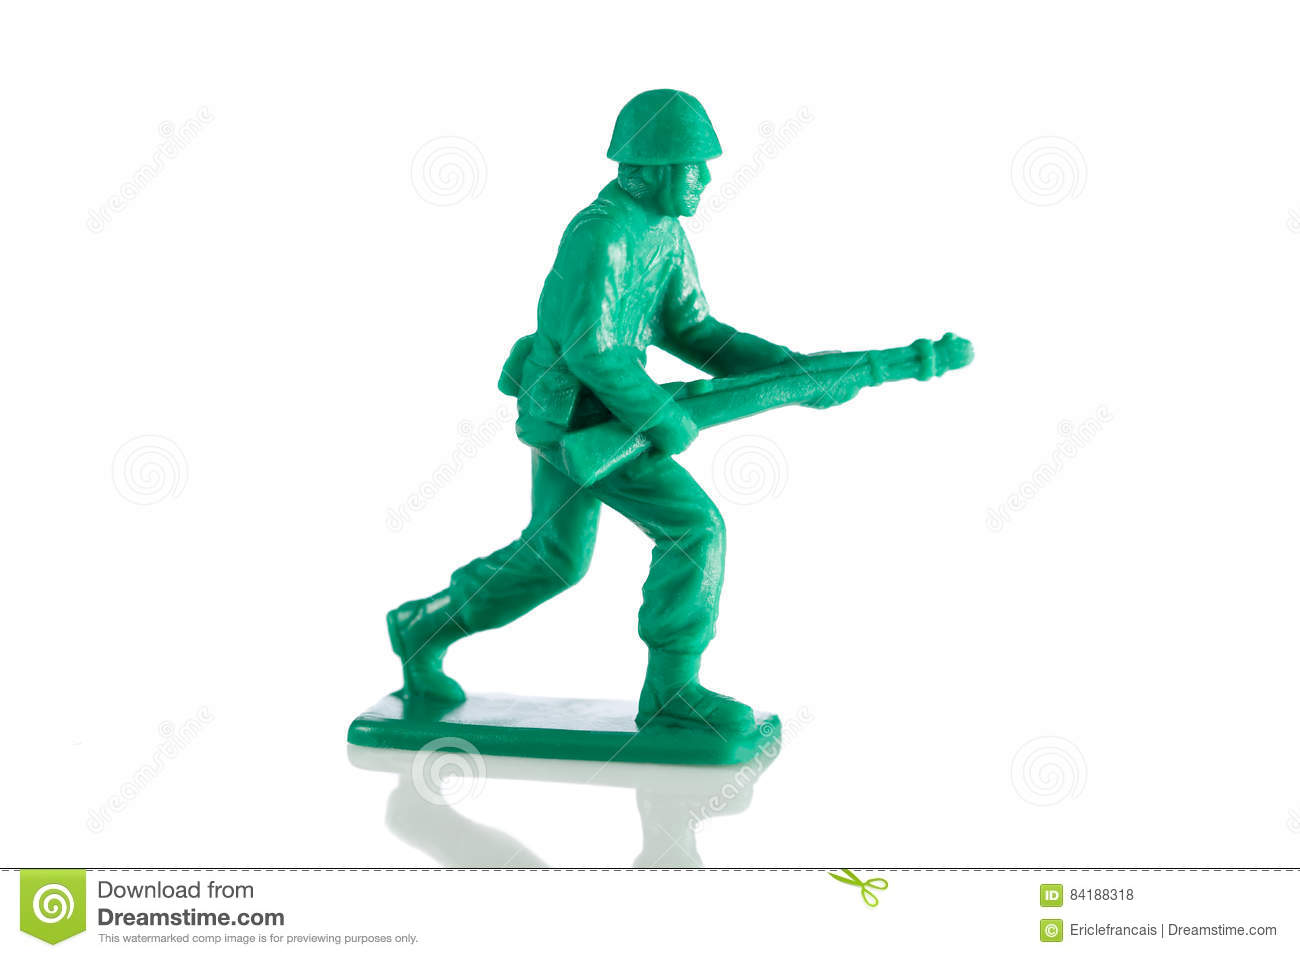 Miniature plastic toy soldier